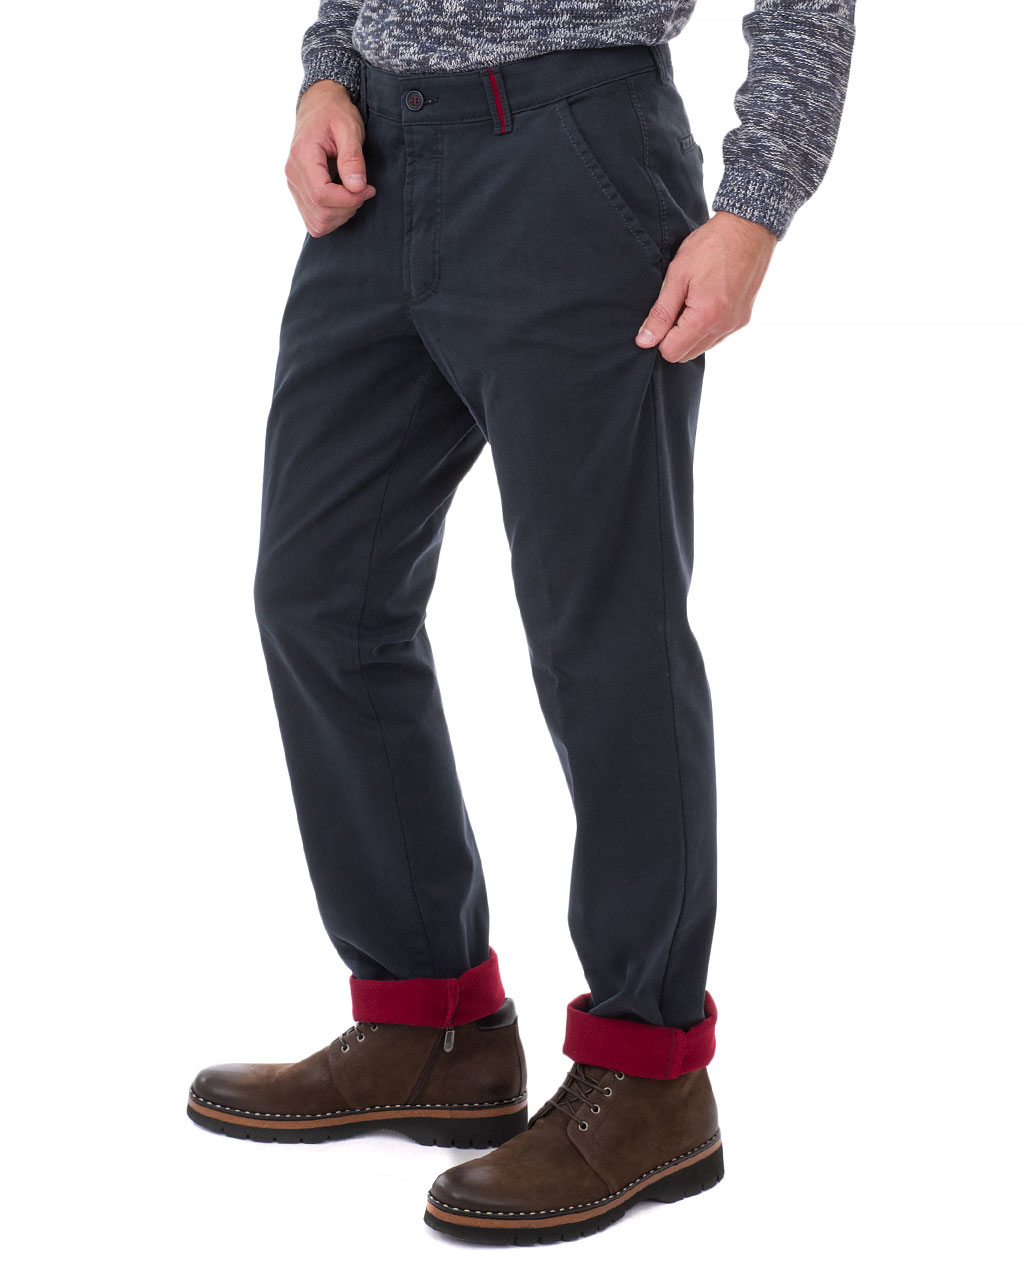 Men's trousers Carno 6826-41/19-20 (4)